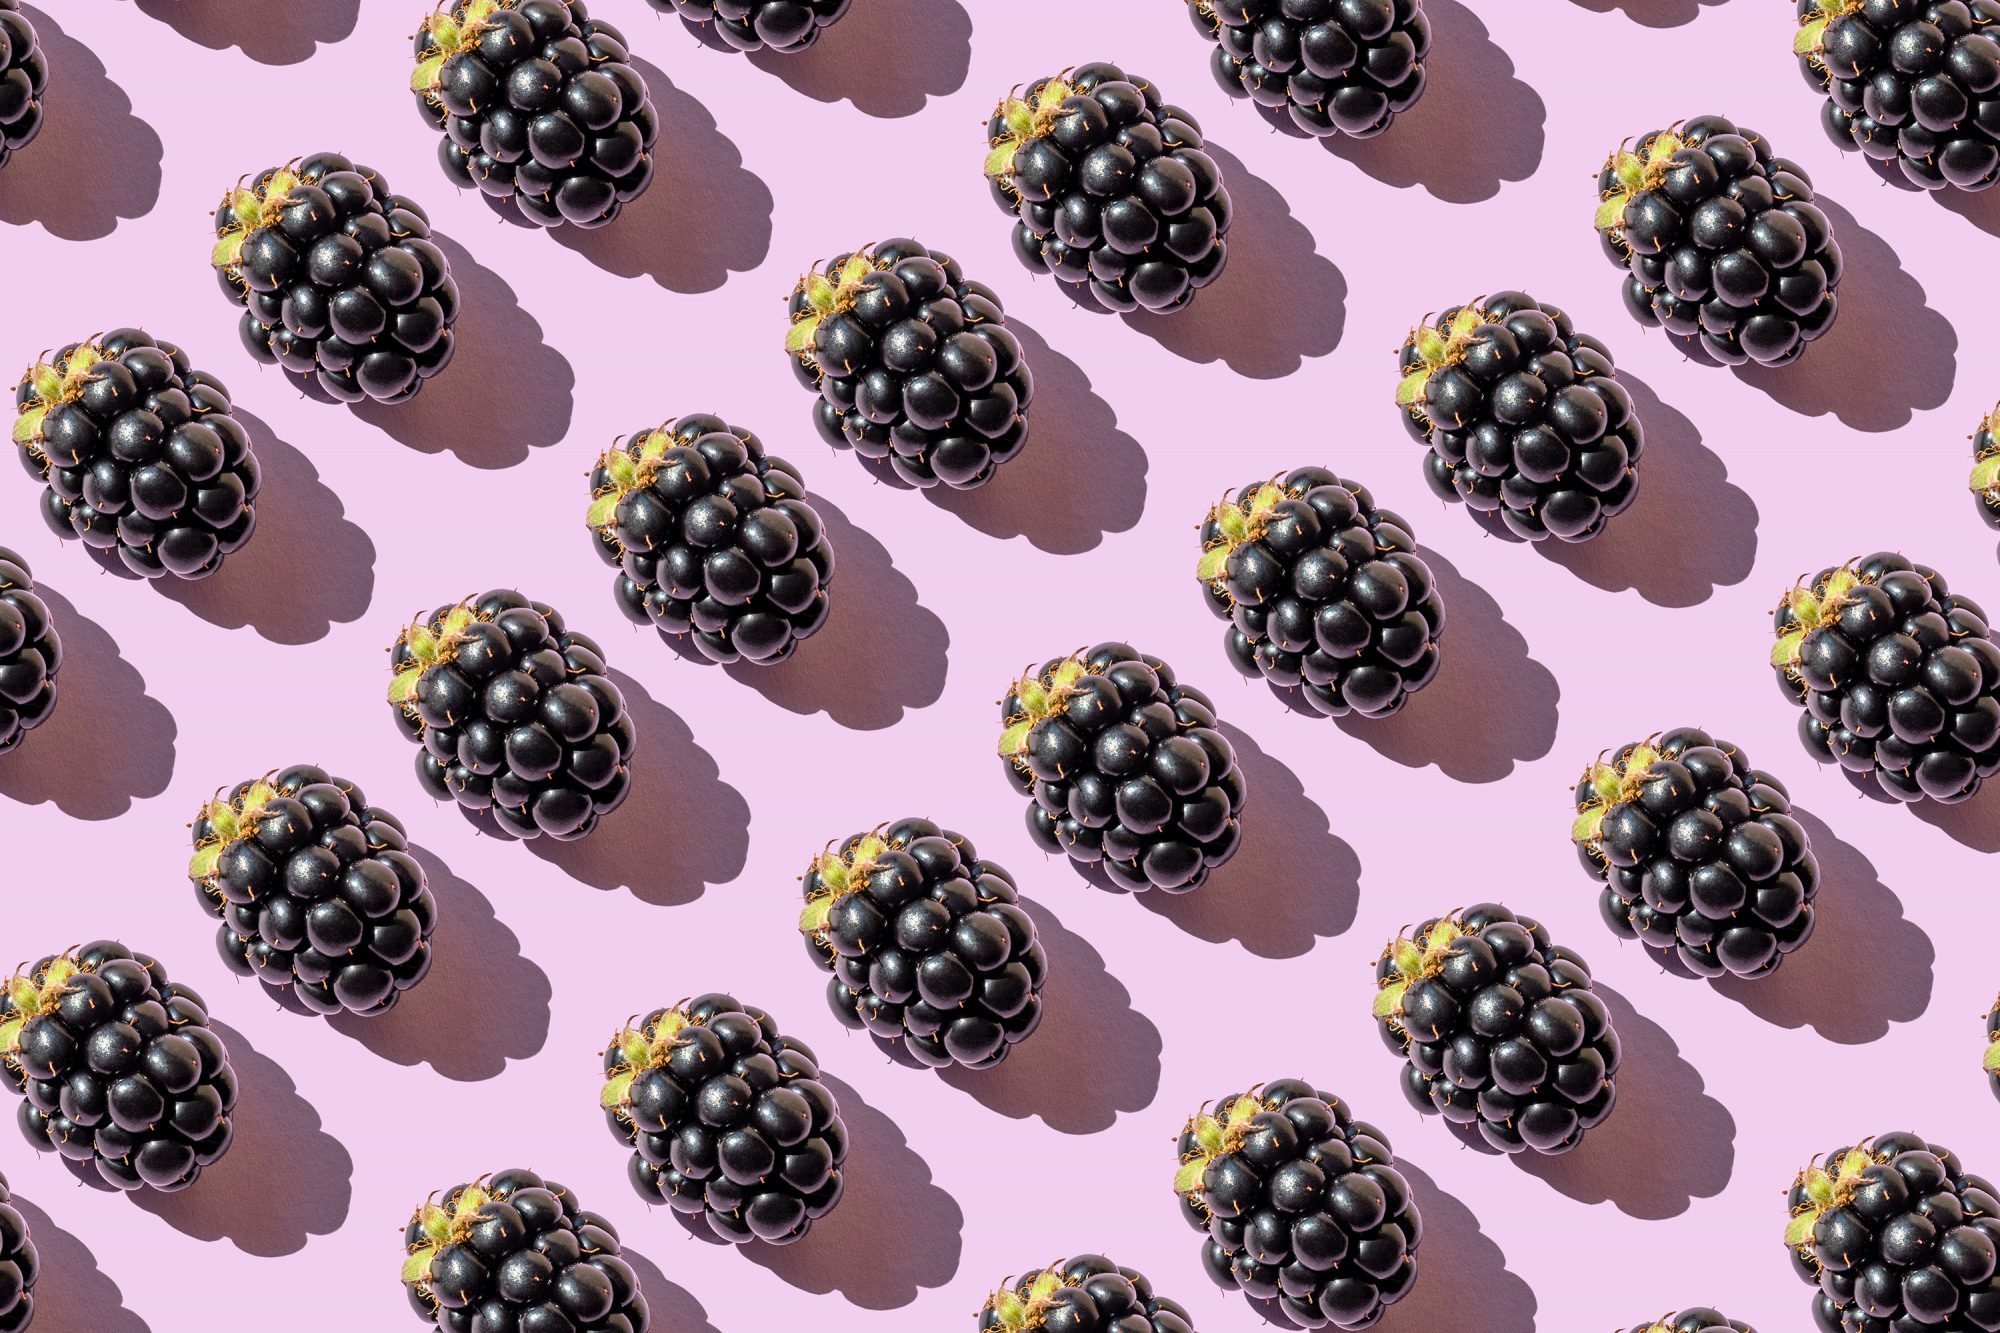 Repeated blackberries on the purple background